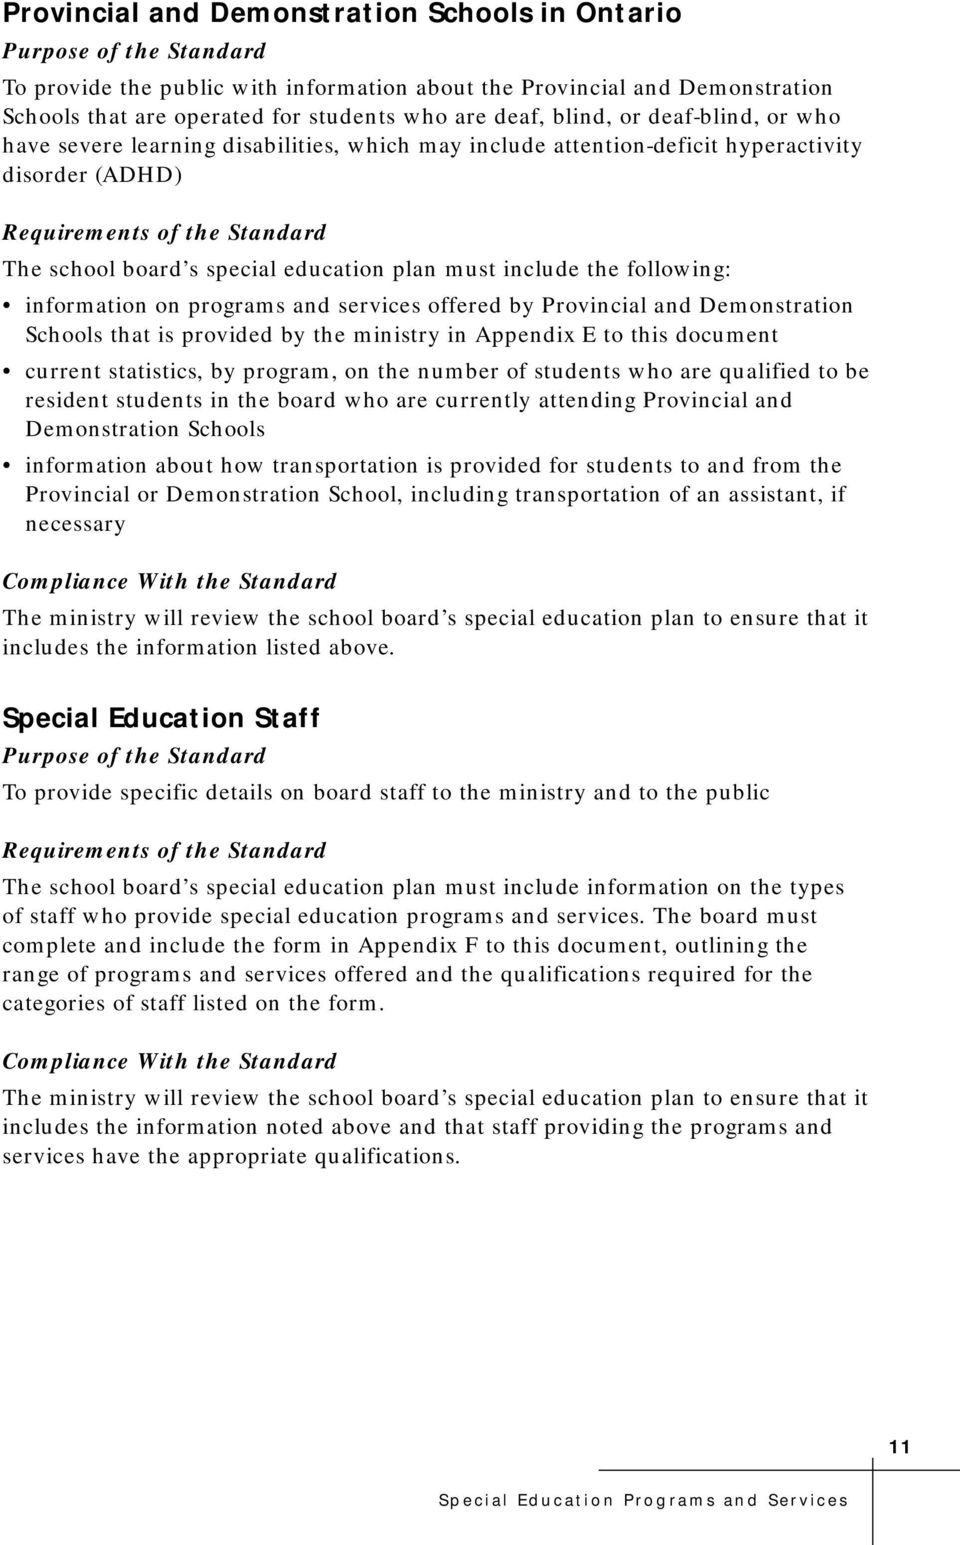 education plan must include the following: information on programs and services offered by Provincial and Demonstration Schools that is provided by the ministry in Appendix E to this document current